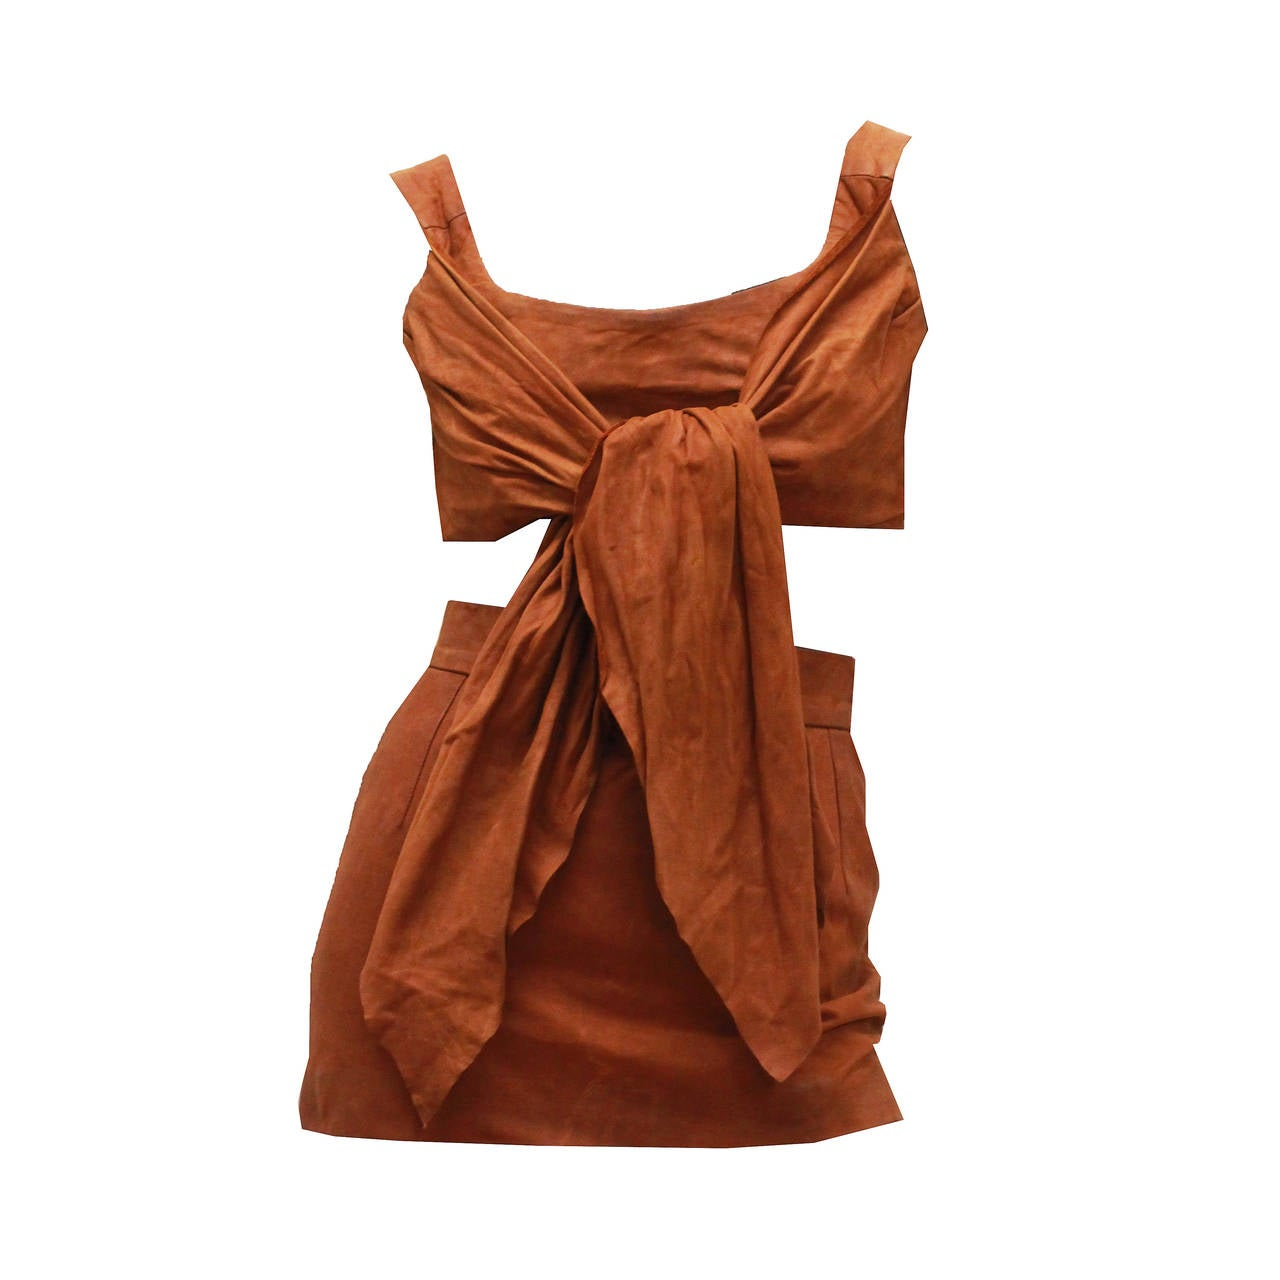 1980s Vivienne Westwood Leather Corset and Mini Skirt Ensemble 1